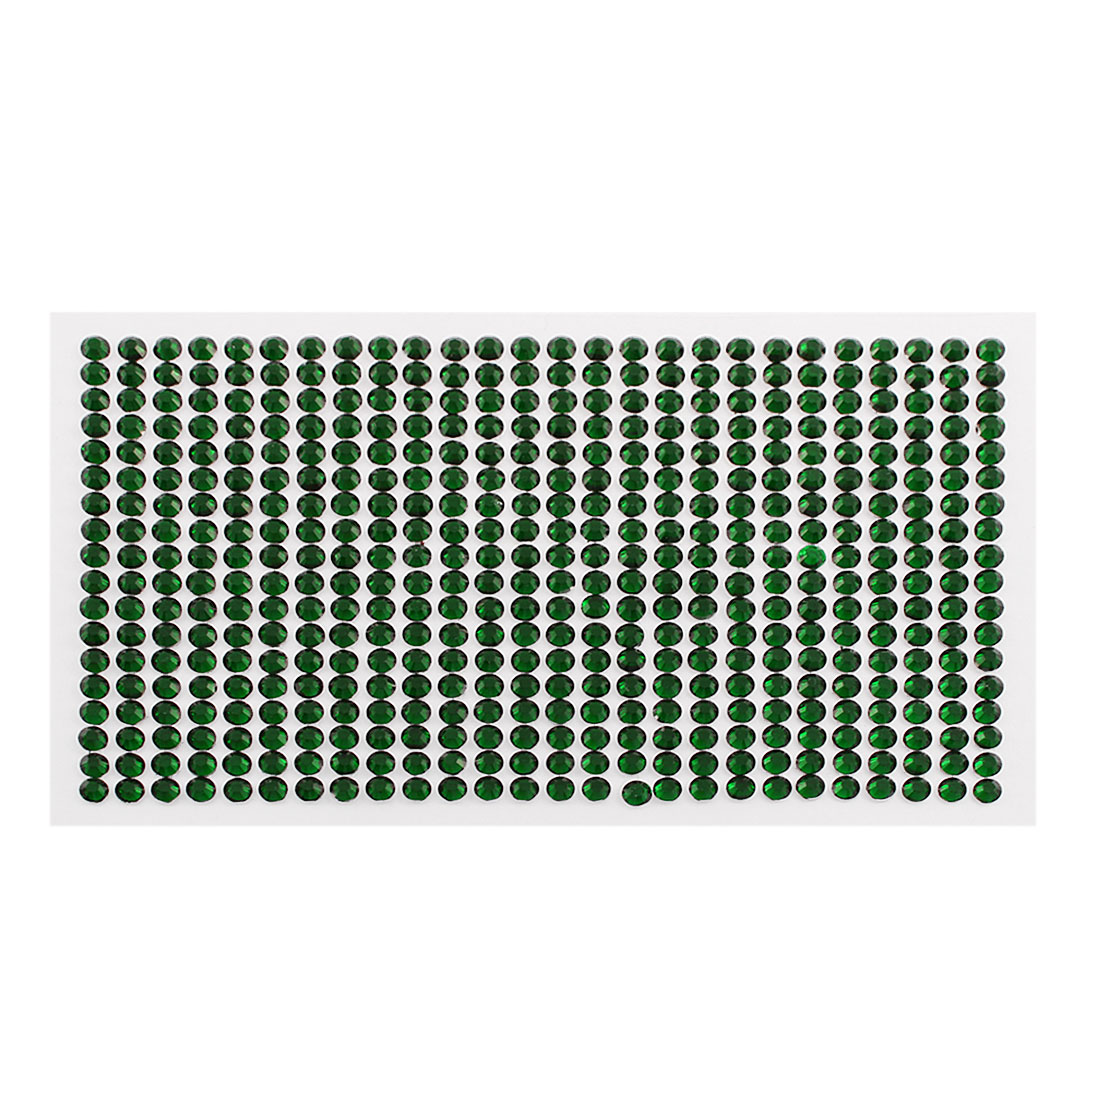 5mm Round Self Adhesive Sparkly Crystal Rhinestone DIY Stickers Green